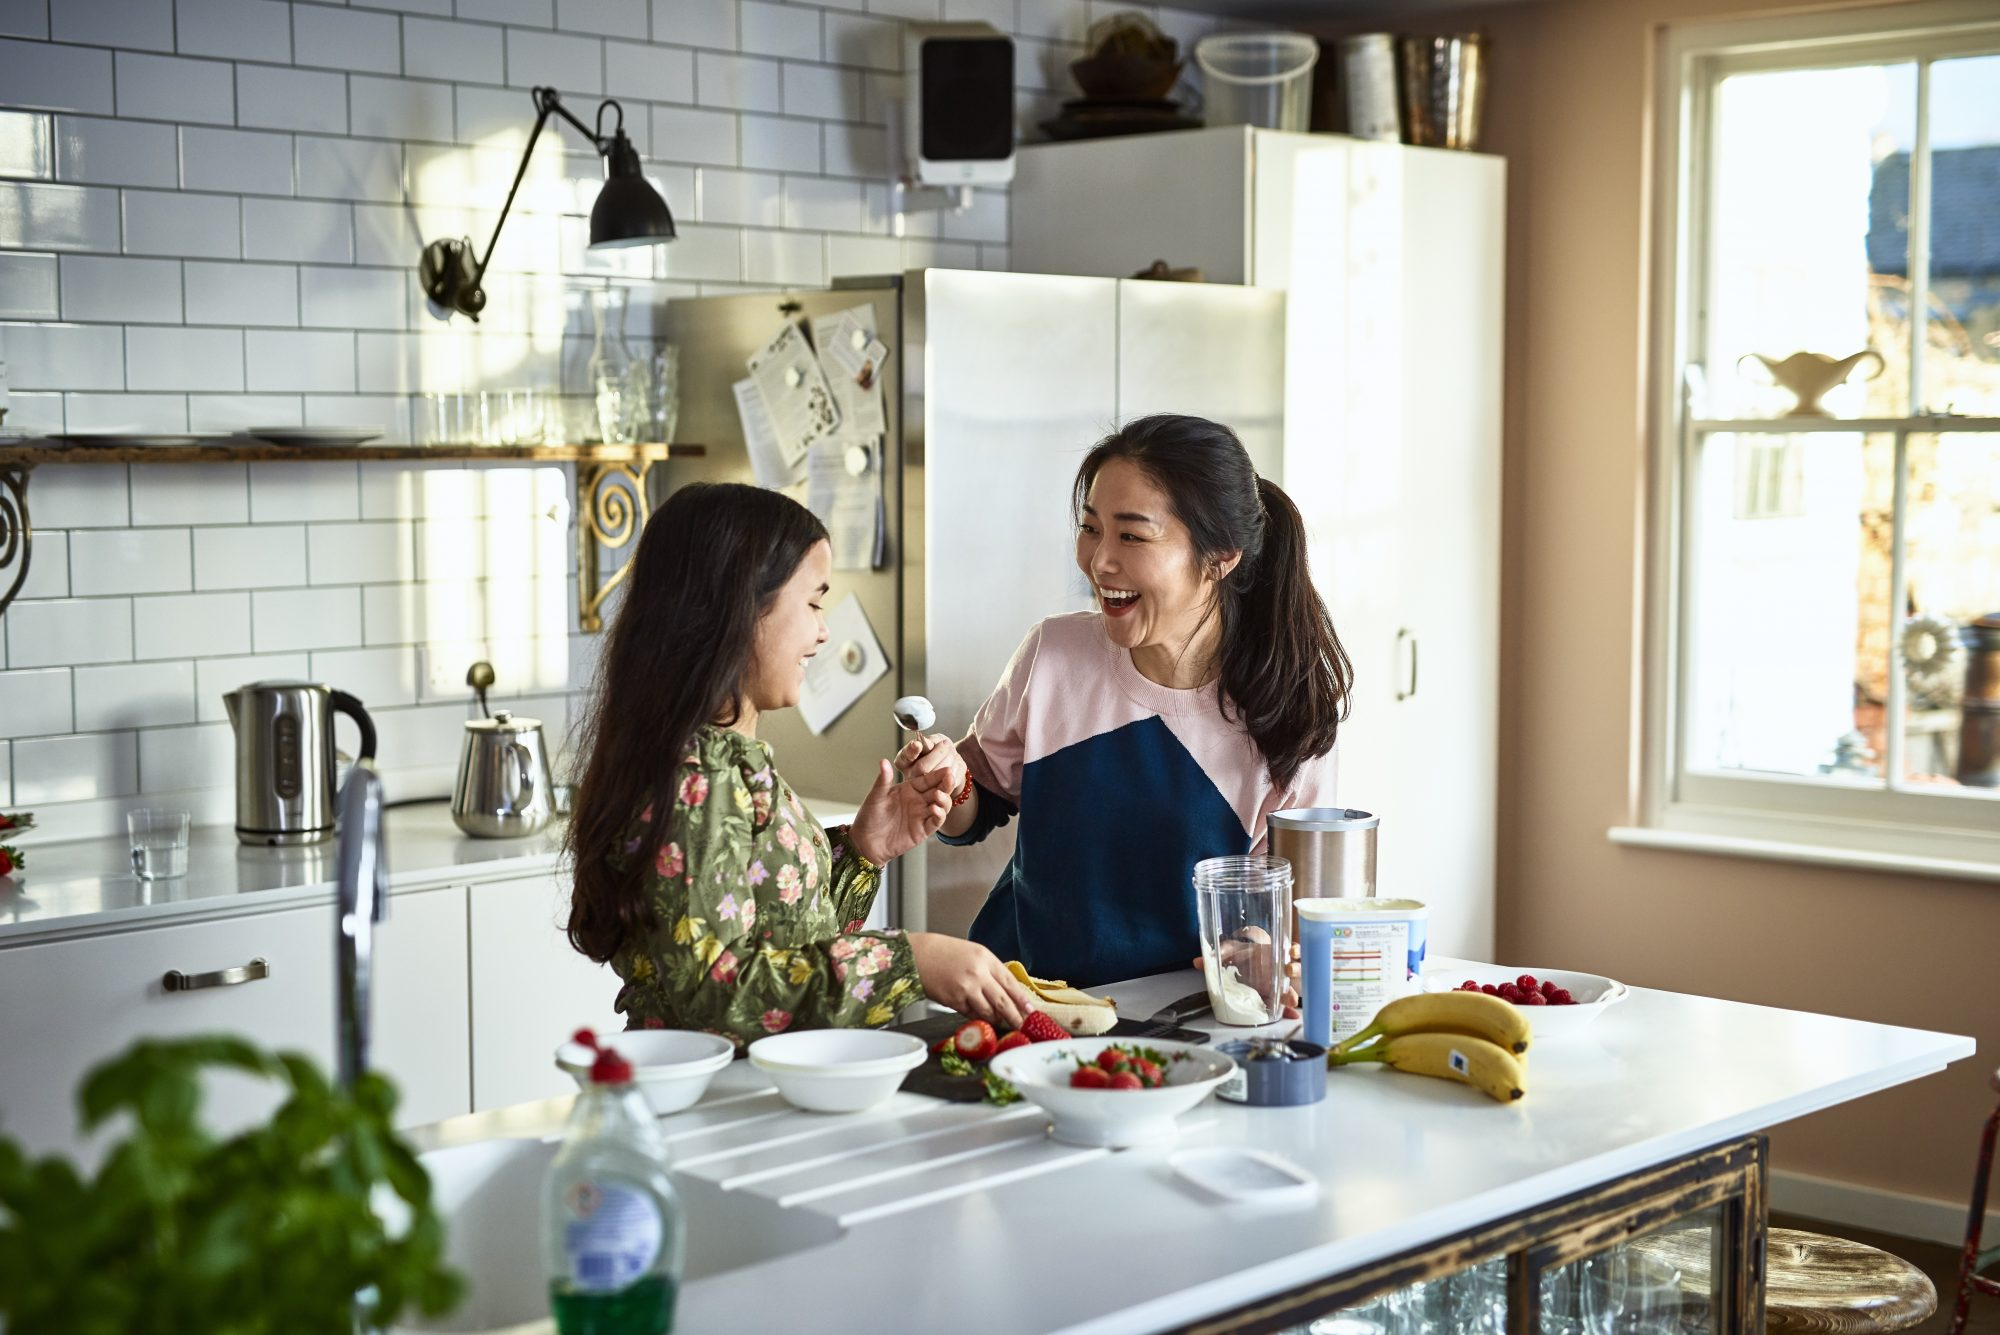 Woman holding yoghurt on spoon towards girl, laughing, threatening to smear food on daughter's face, messing about, having fun, playing, bonding